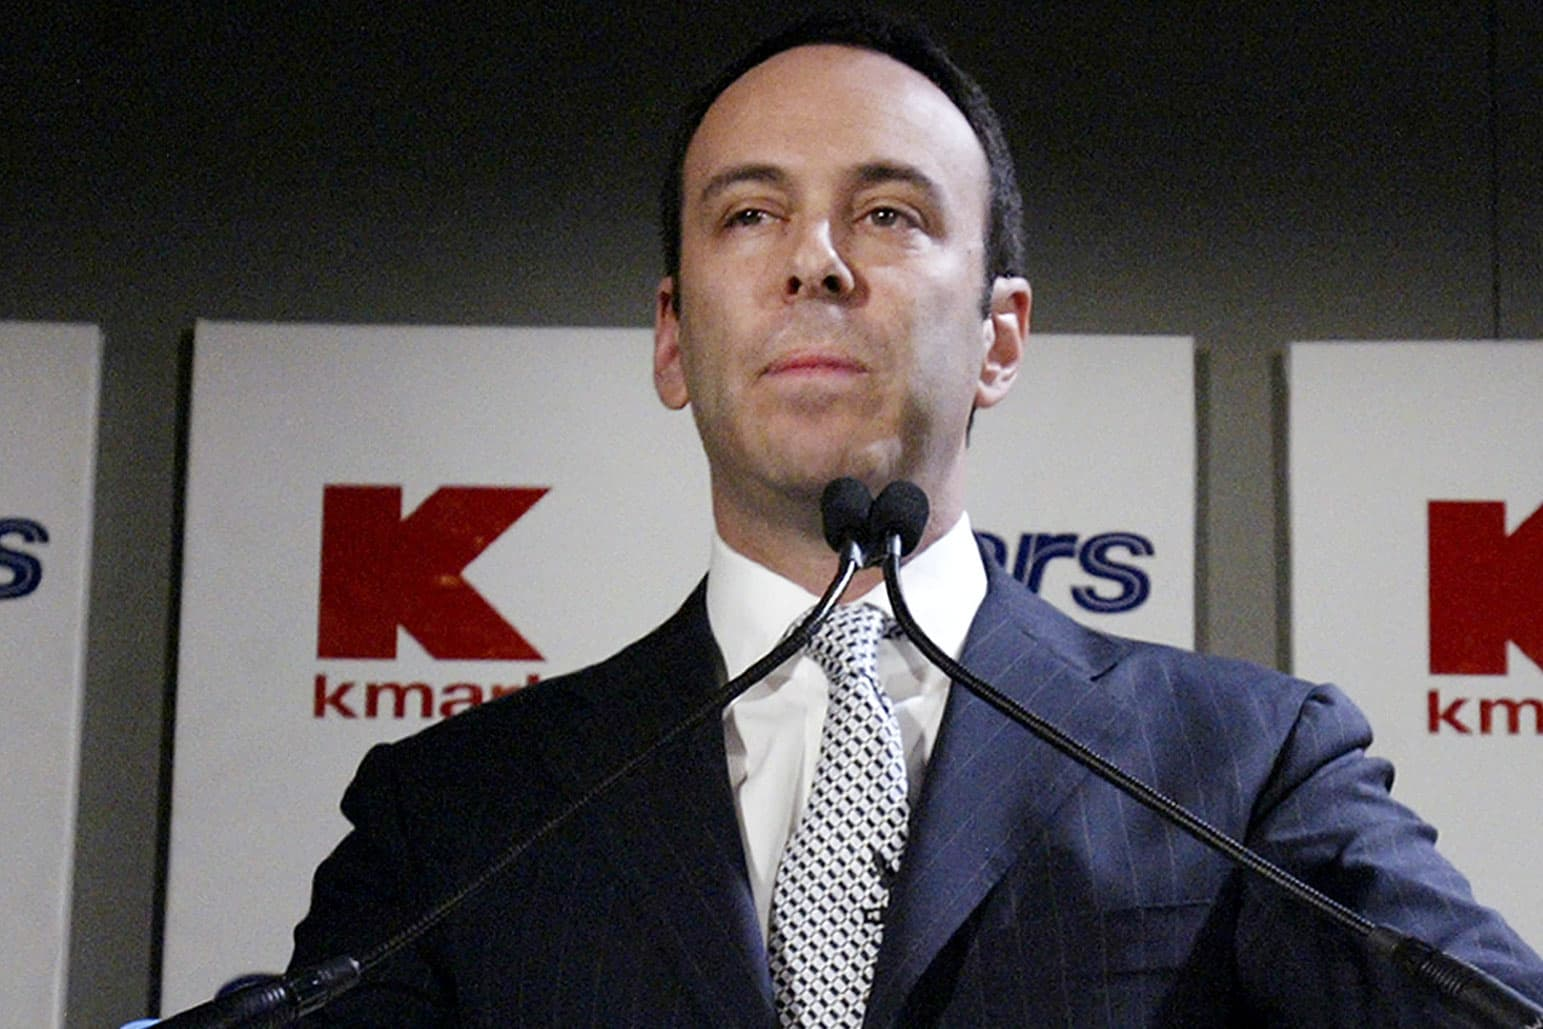 It's lights out for Sears on Tuesday unless Eddie Lampert can sweeten his bid